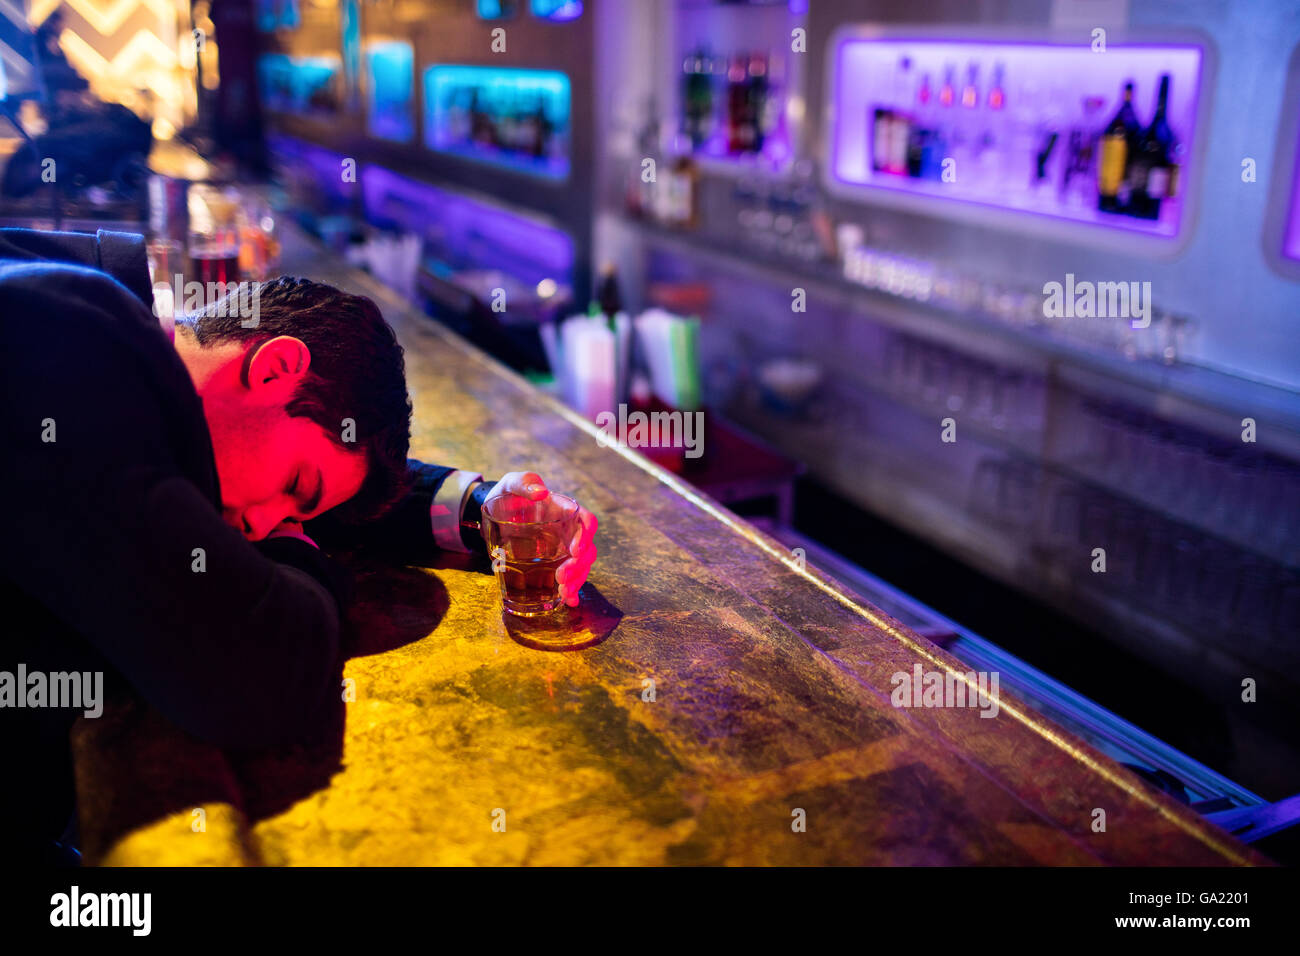 Drunken Man Sleeping On Bar Stockfotos & Drunken Man Sleeping On Bar ...